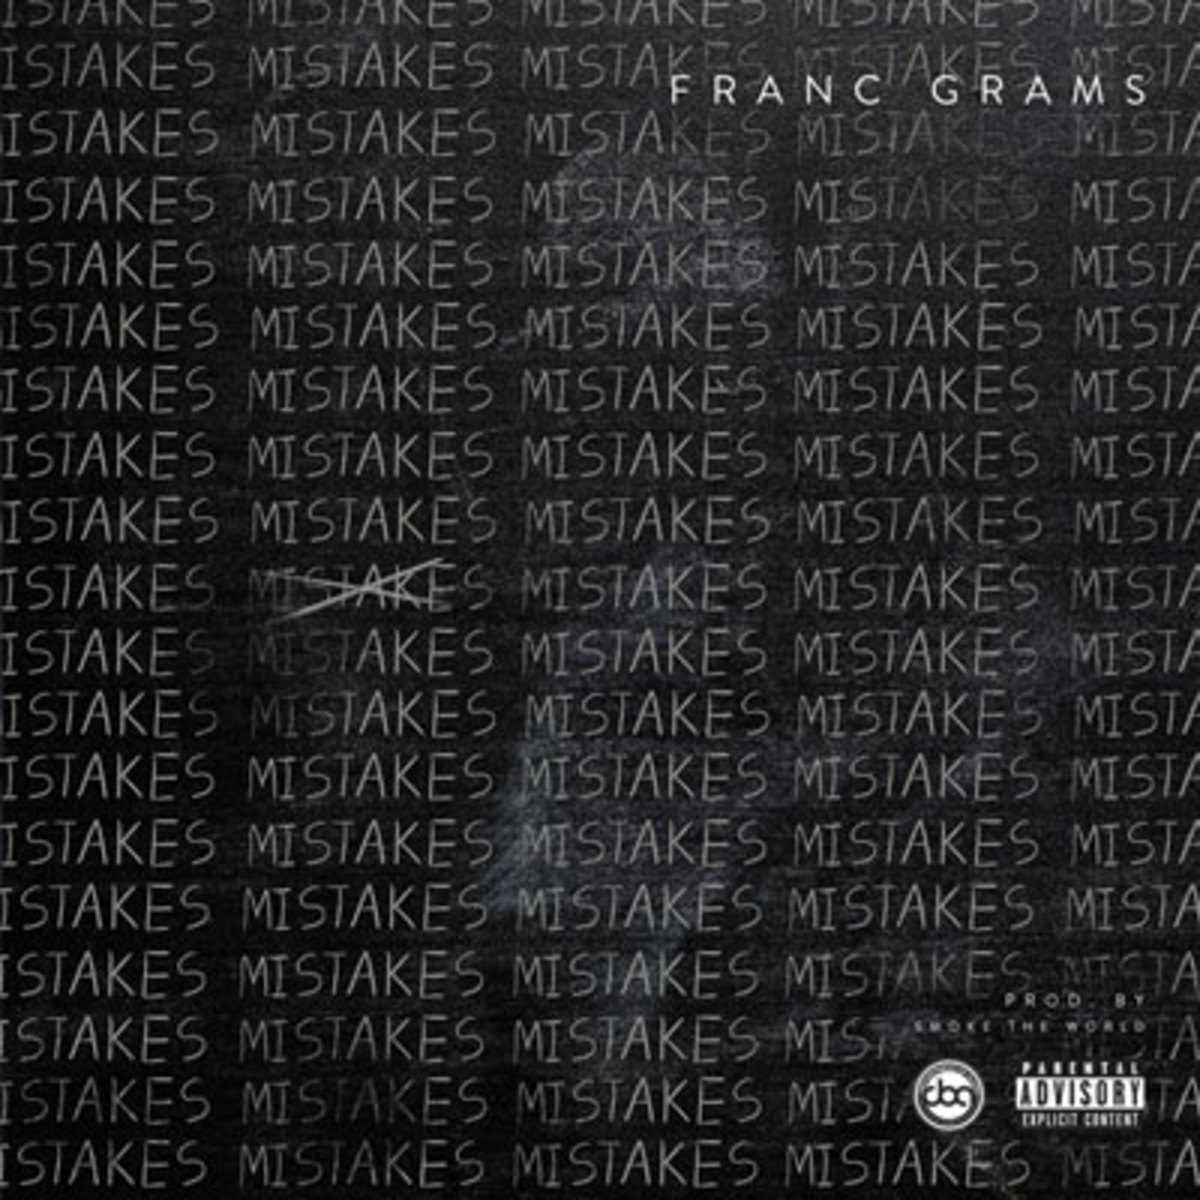 frankgrams-mistakes.jpg